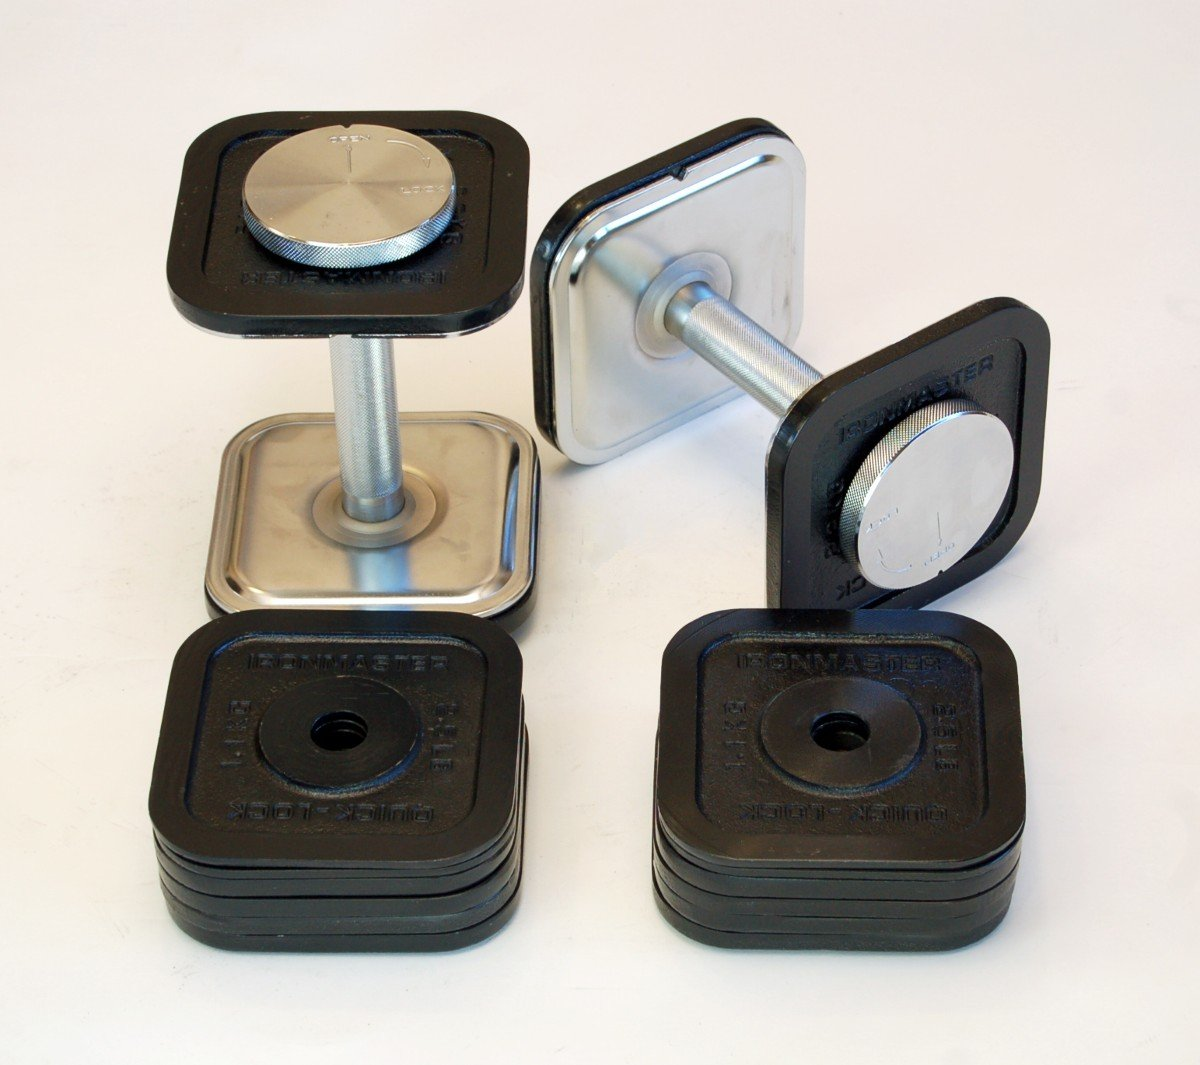 Ironmaster Adjustable Dumbbells Used: Ironmaster 45 Lb Quick-Lock Adjustable Dumbbell